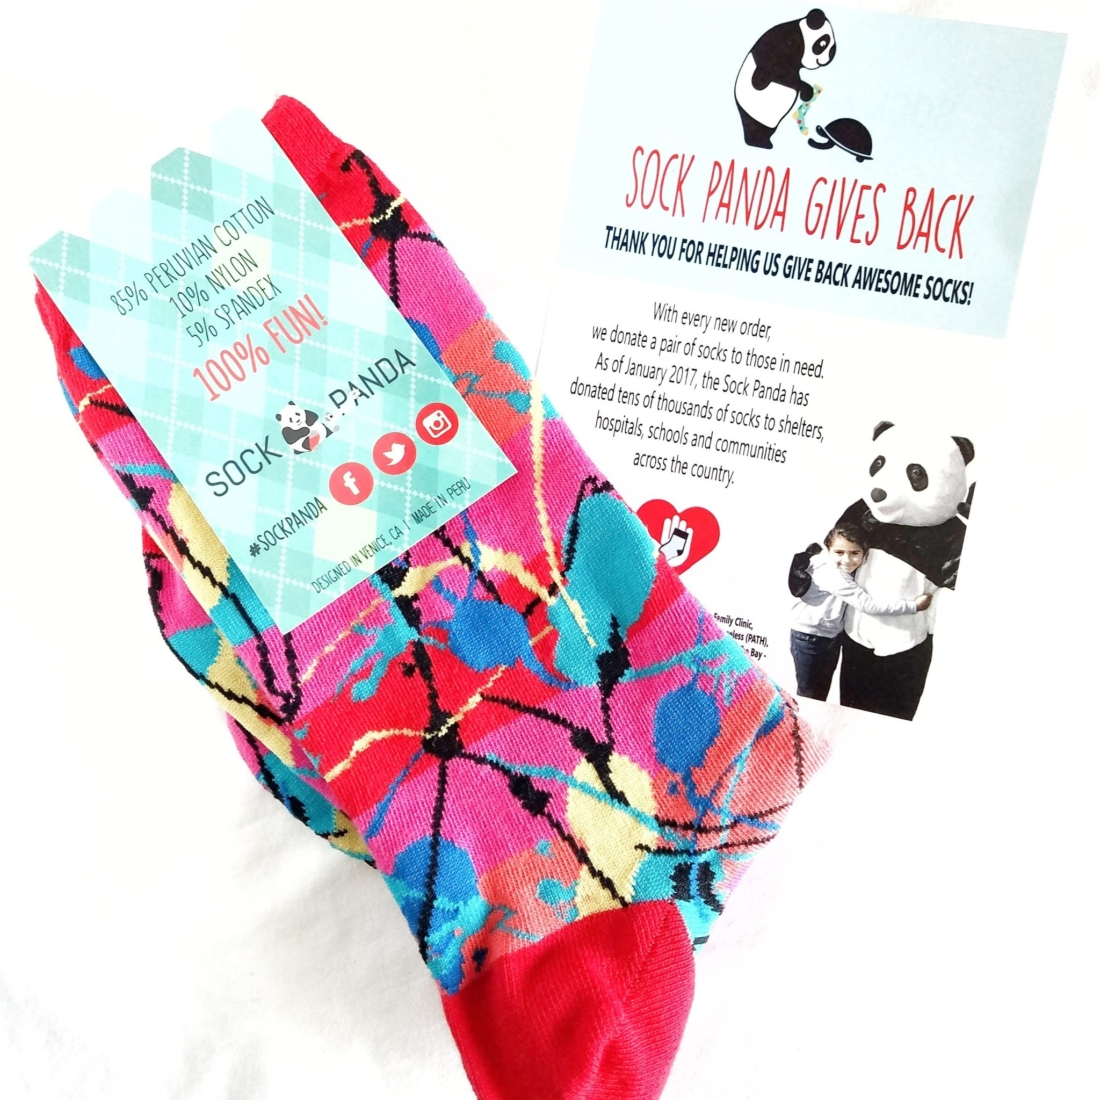 SOCK-PANDA-DONATION-FLYER-AUGUST-2017.jpg